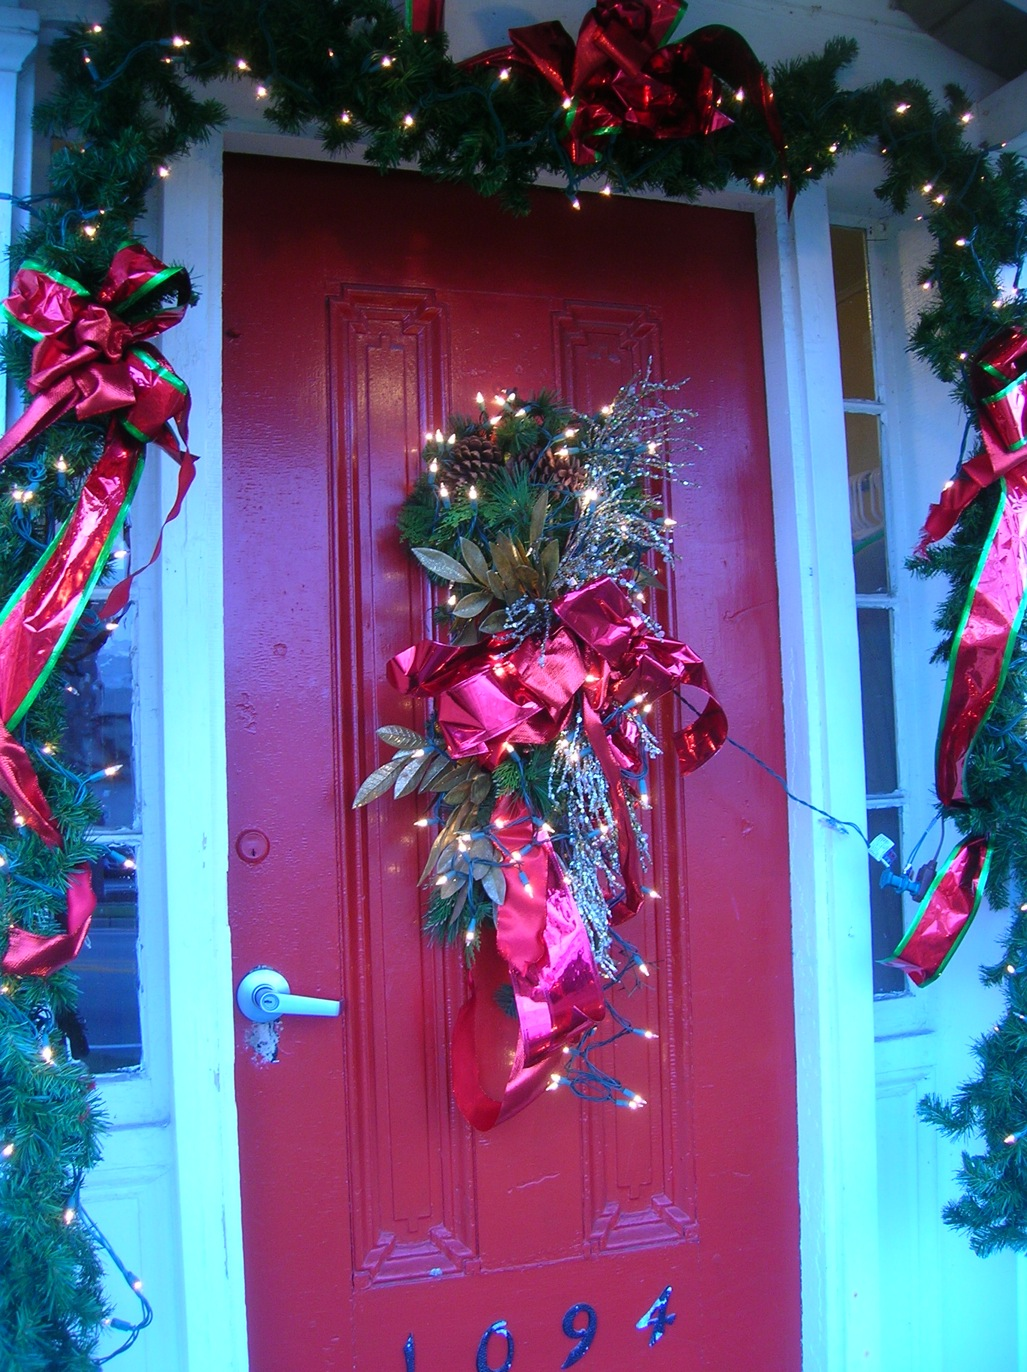 Christmas door design ideas 2017 grasscloth wallpaper for Door decorations for christmas